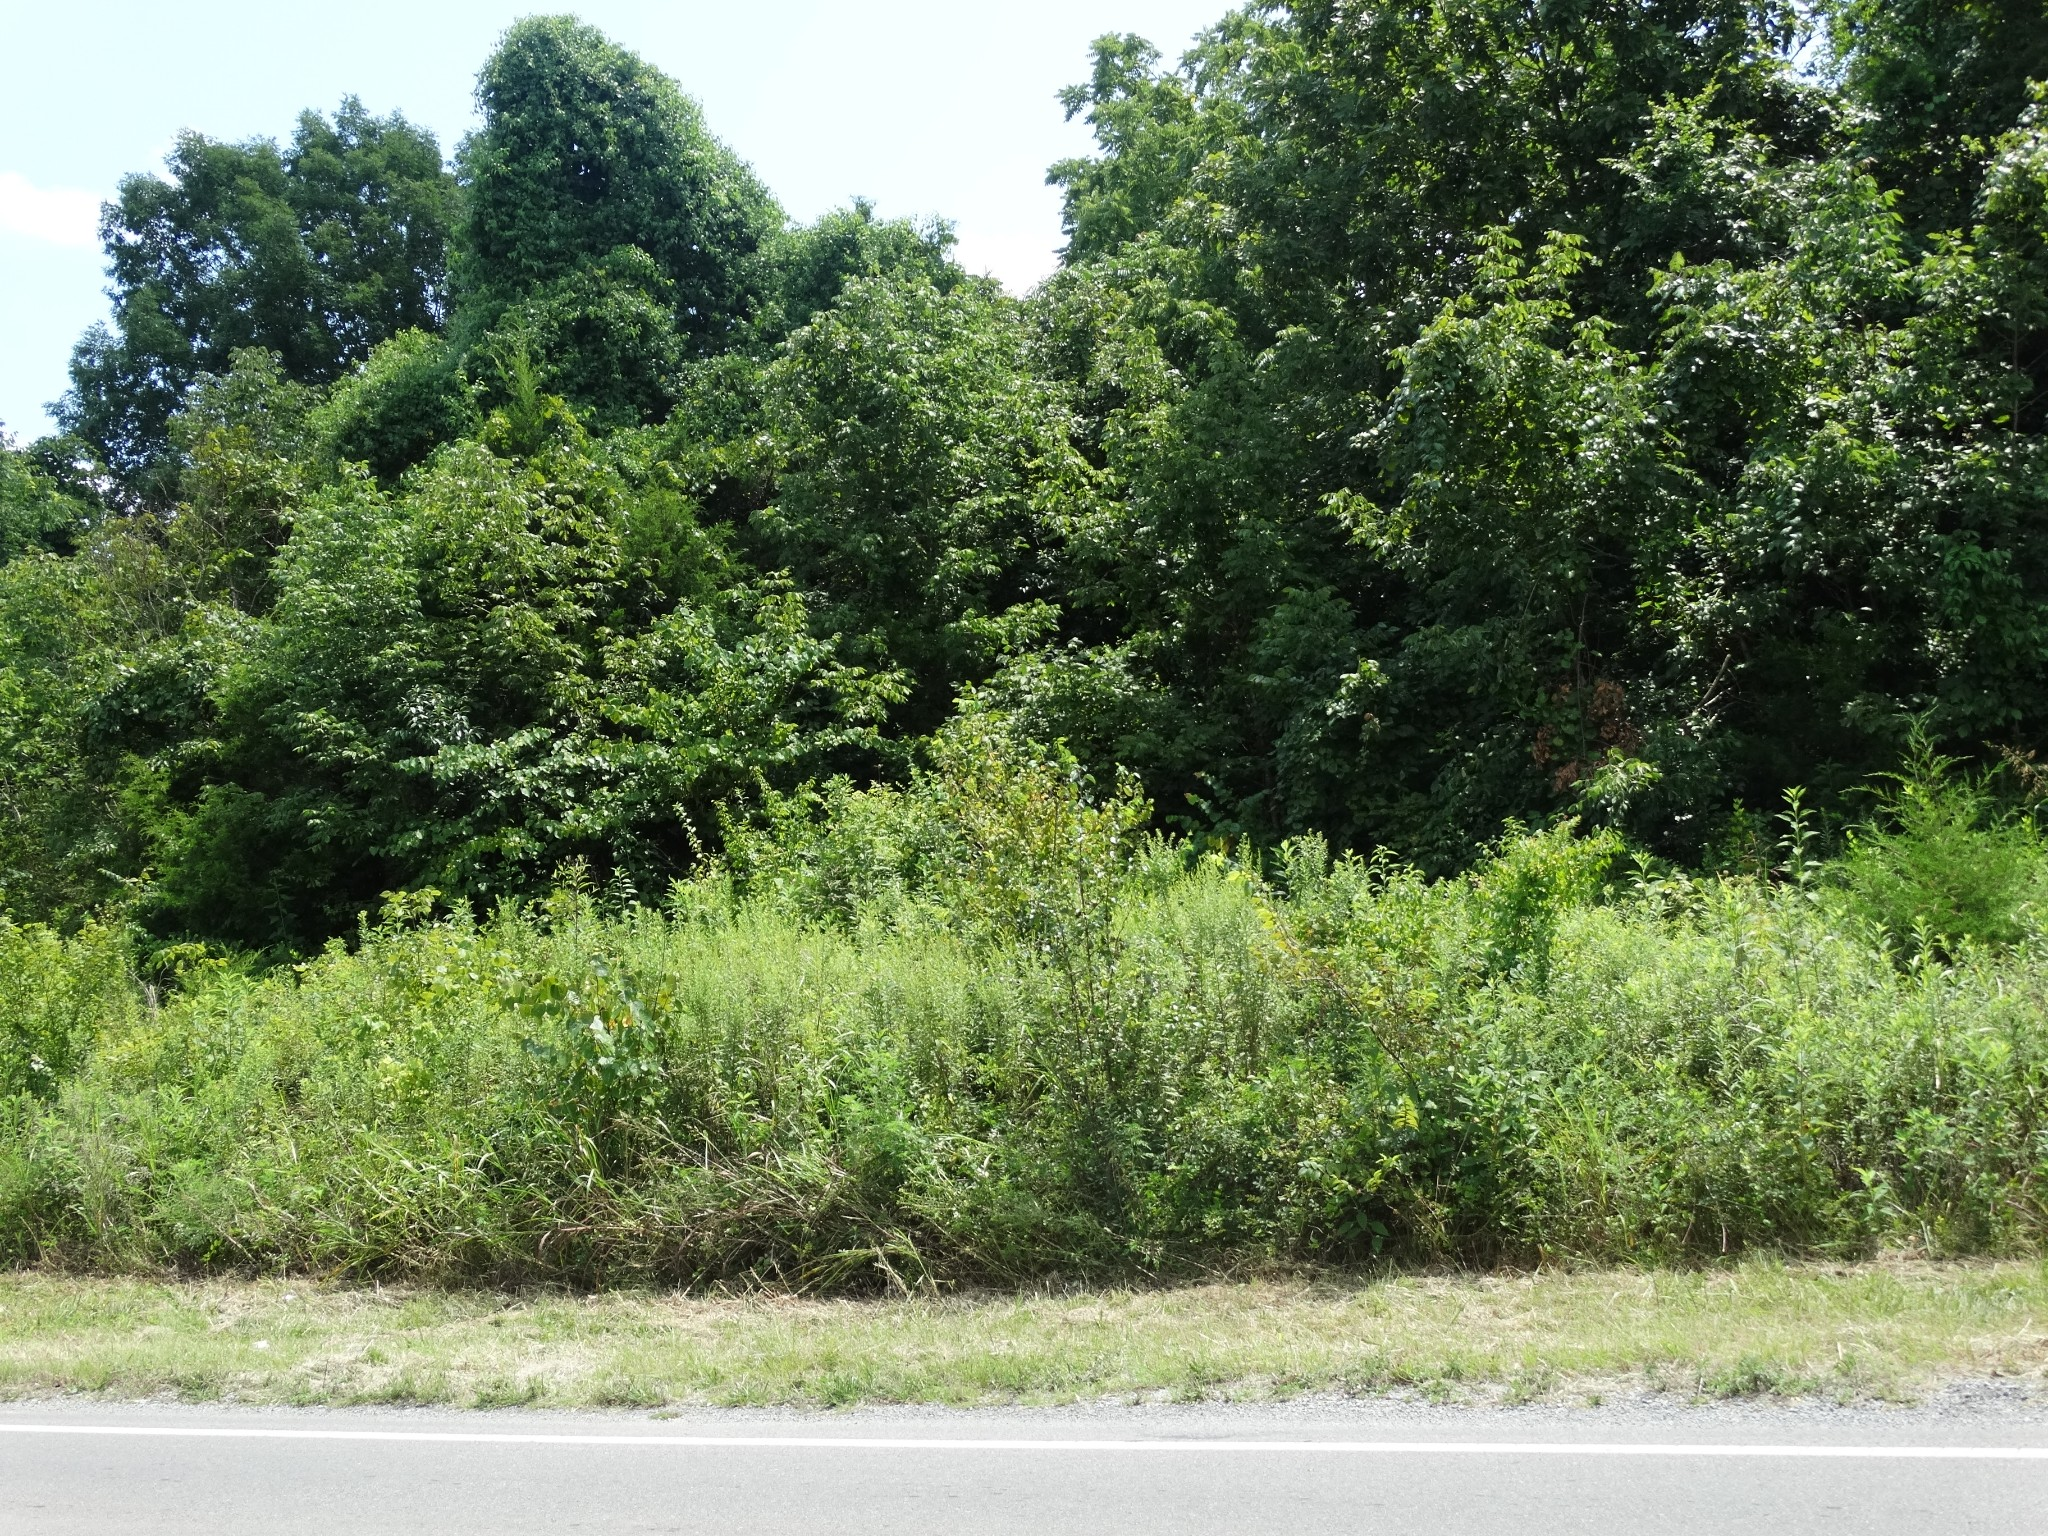 13345 Old Hickory Blvd Property Photo - Antioch, TN real estate listing